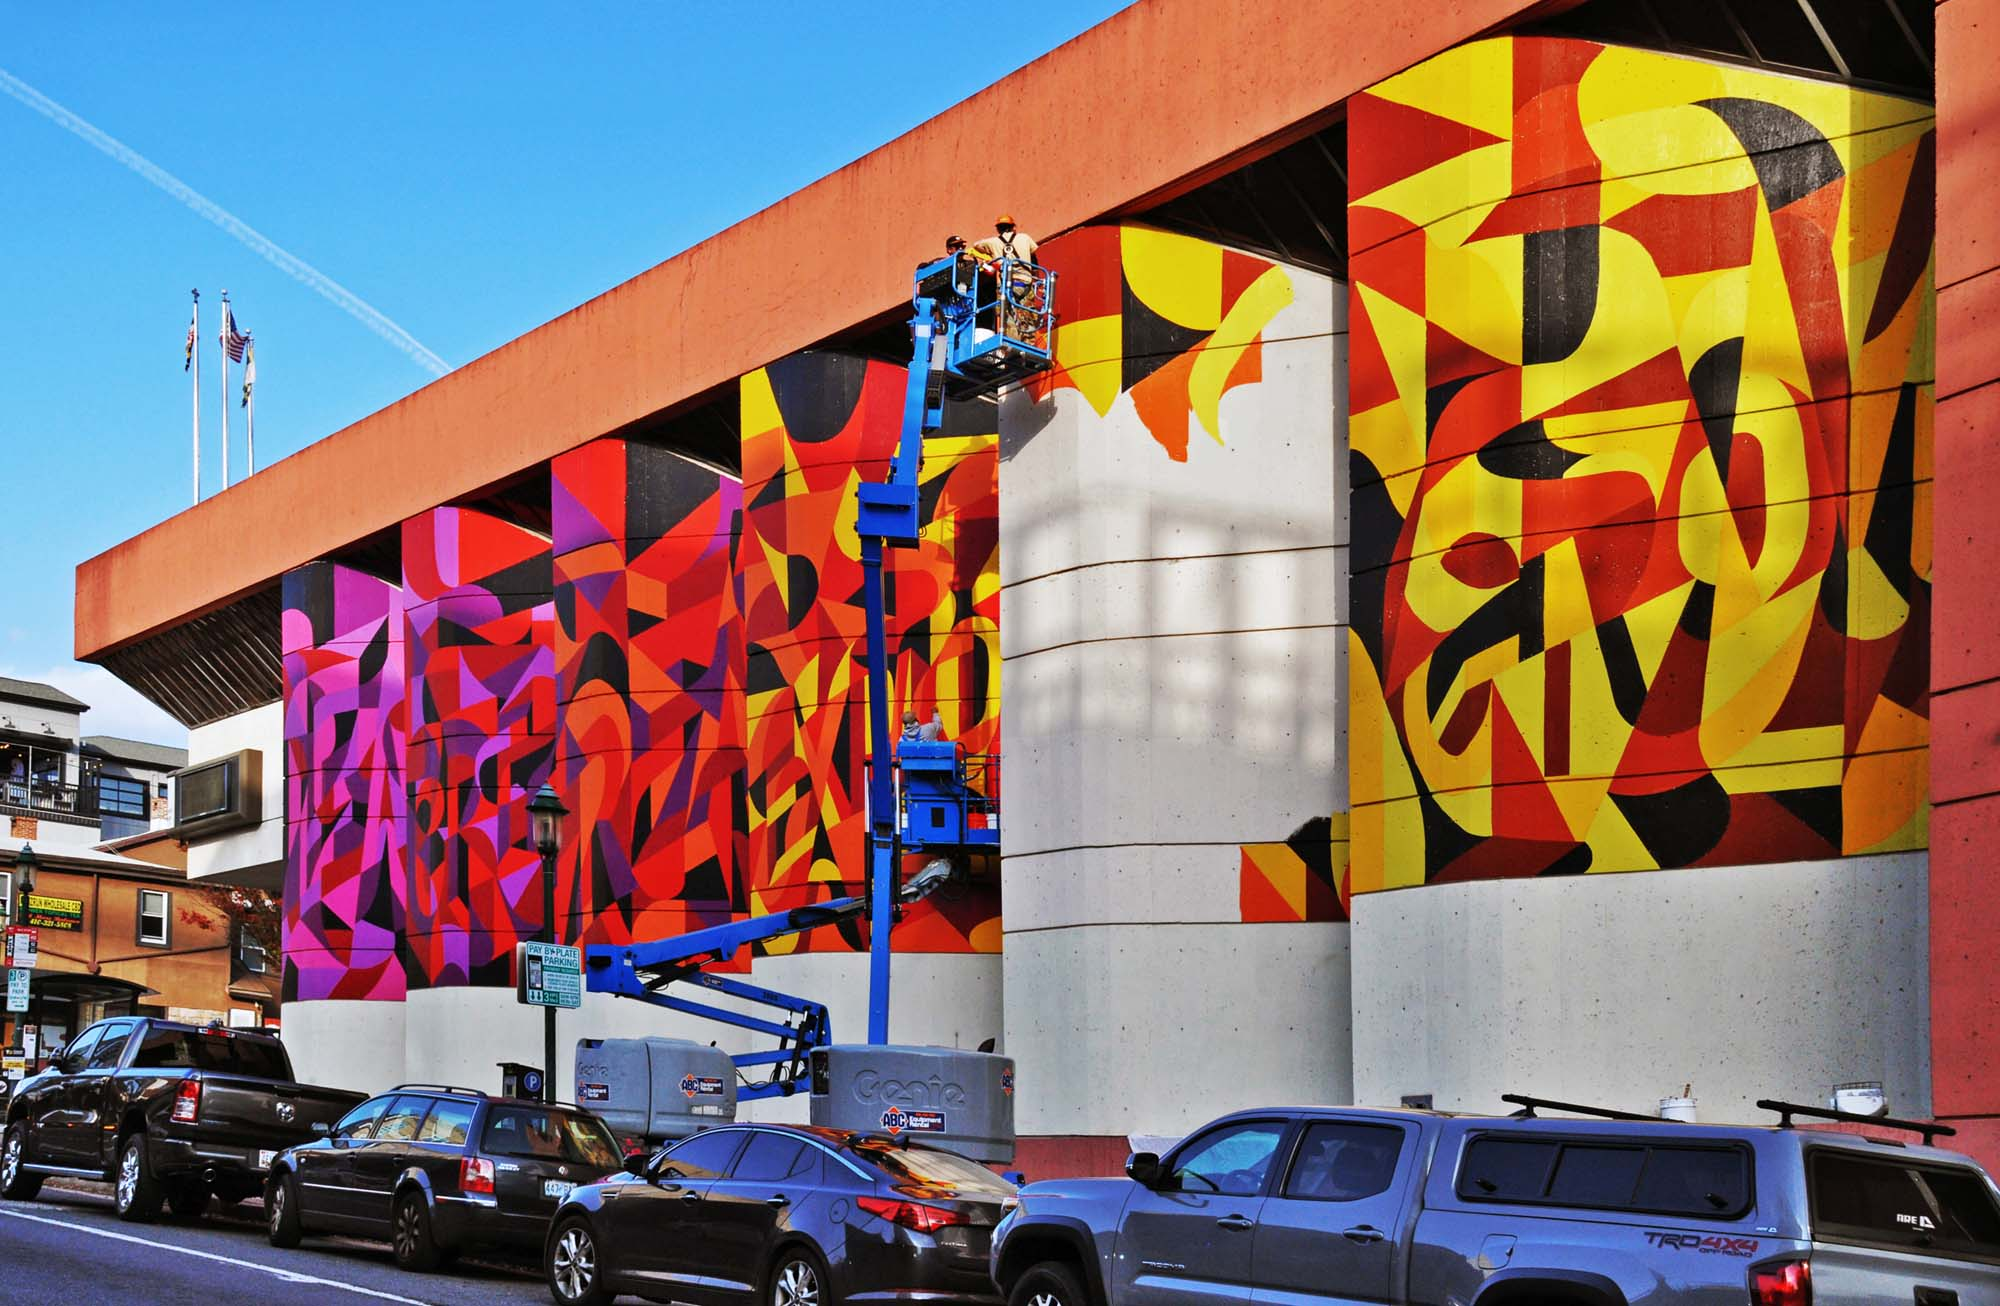 Public Art Mural WIP in Towson Maryland